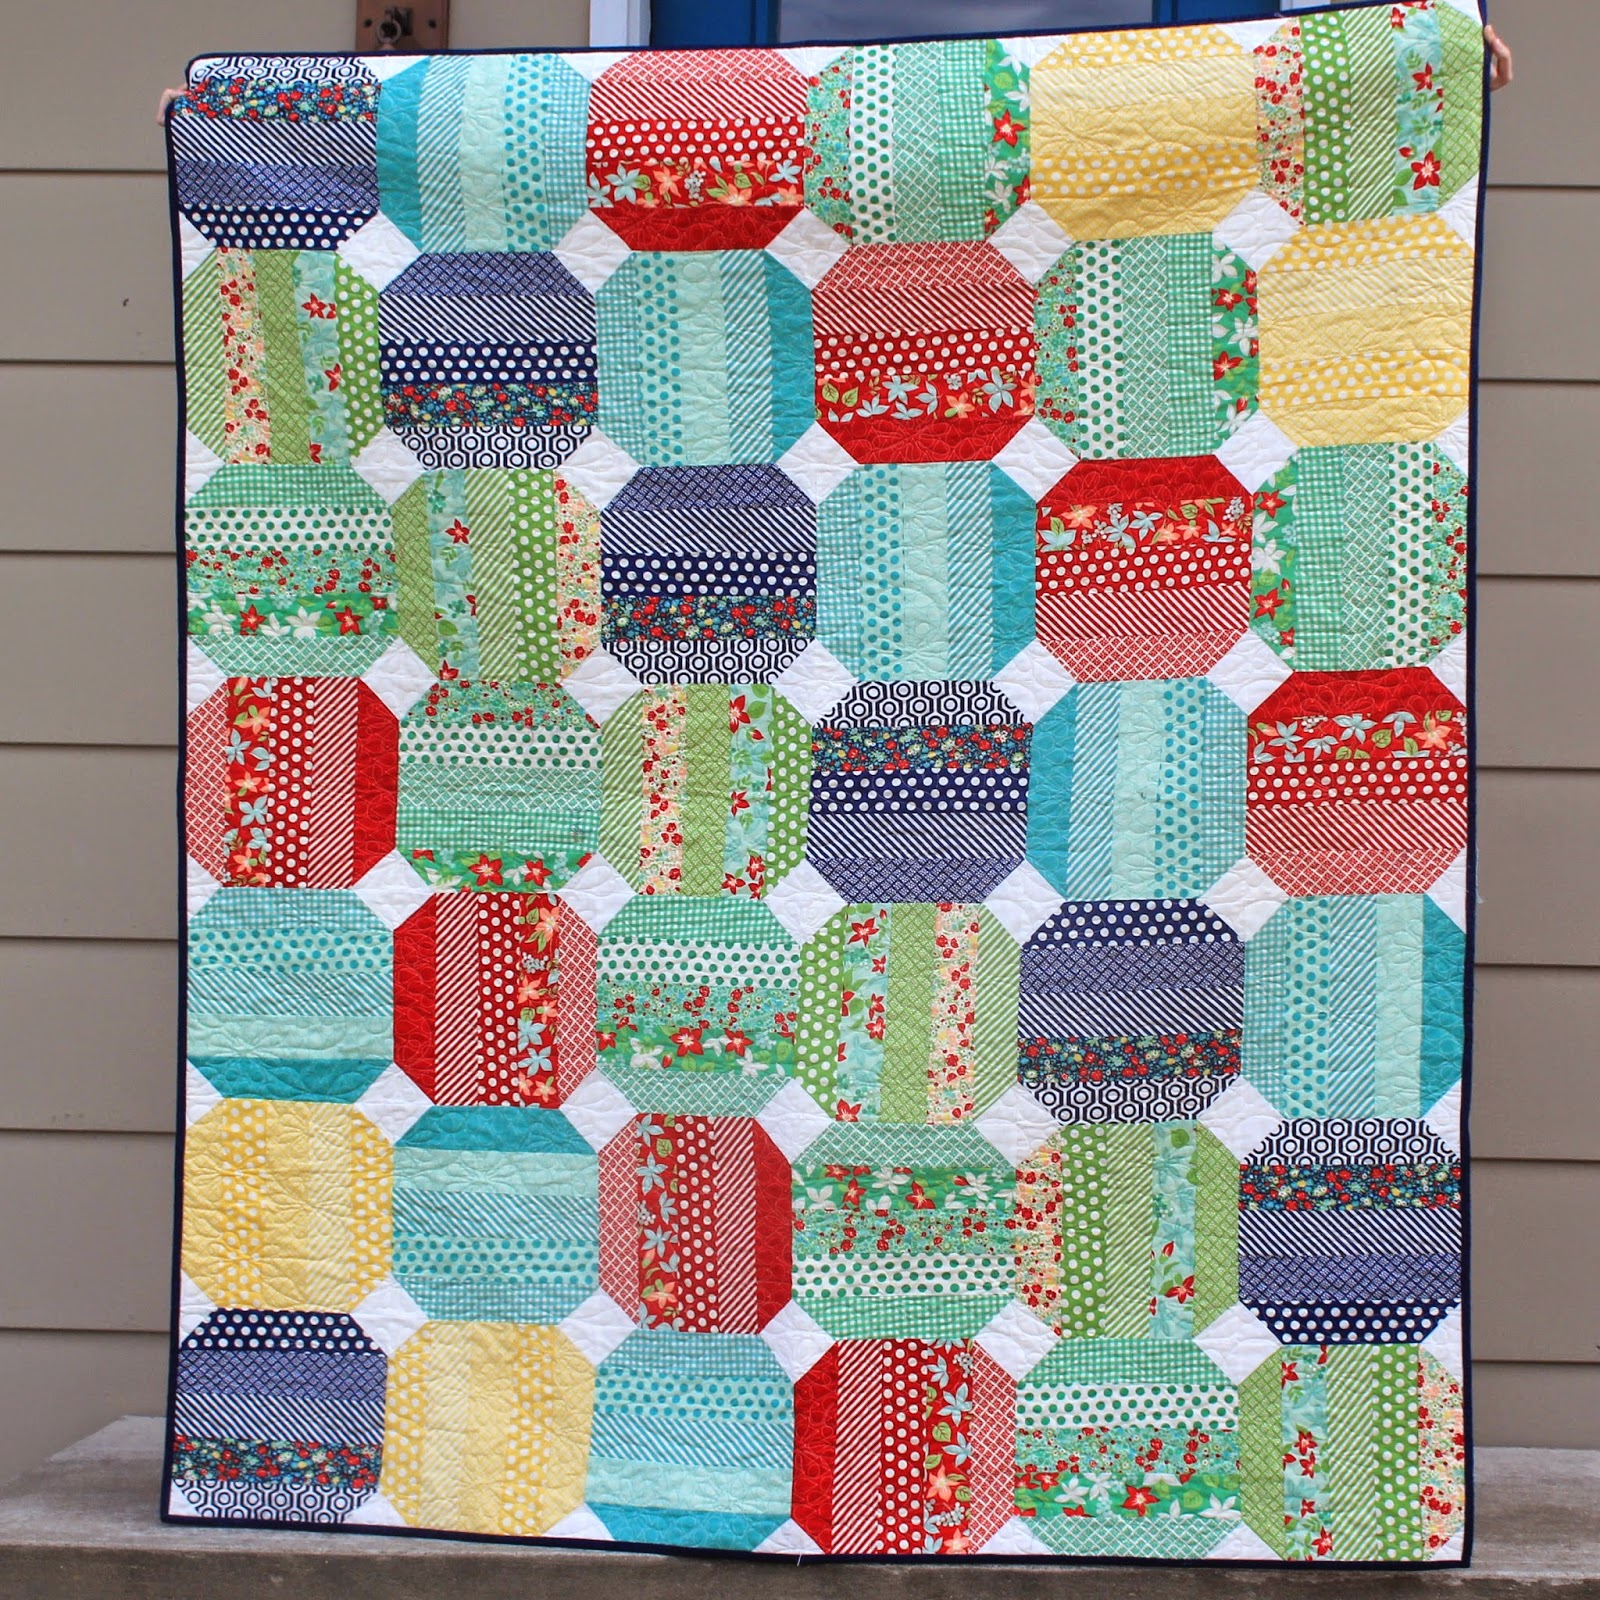 Jelly roll quilt using Moda's April Showers